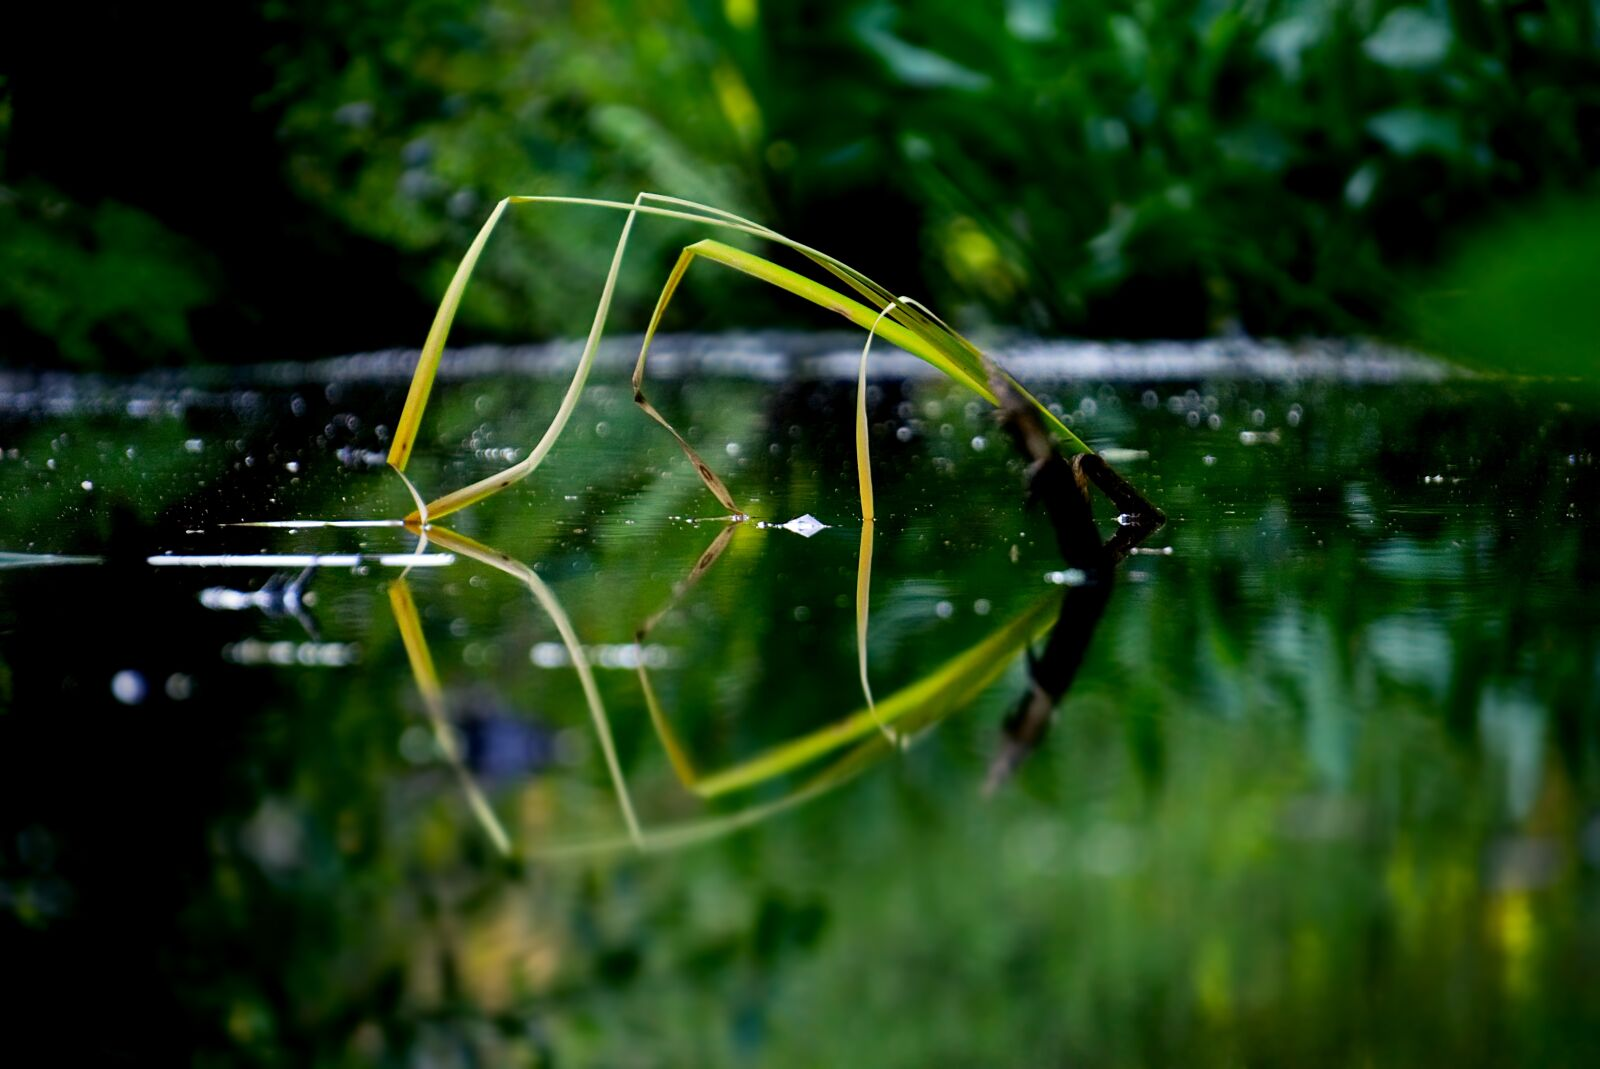 """Sony a6000 sample photo. """"Plant, water, aquatic"""" photography"""